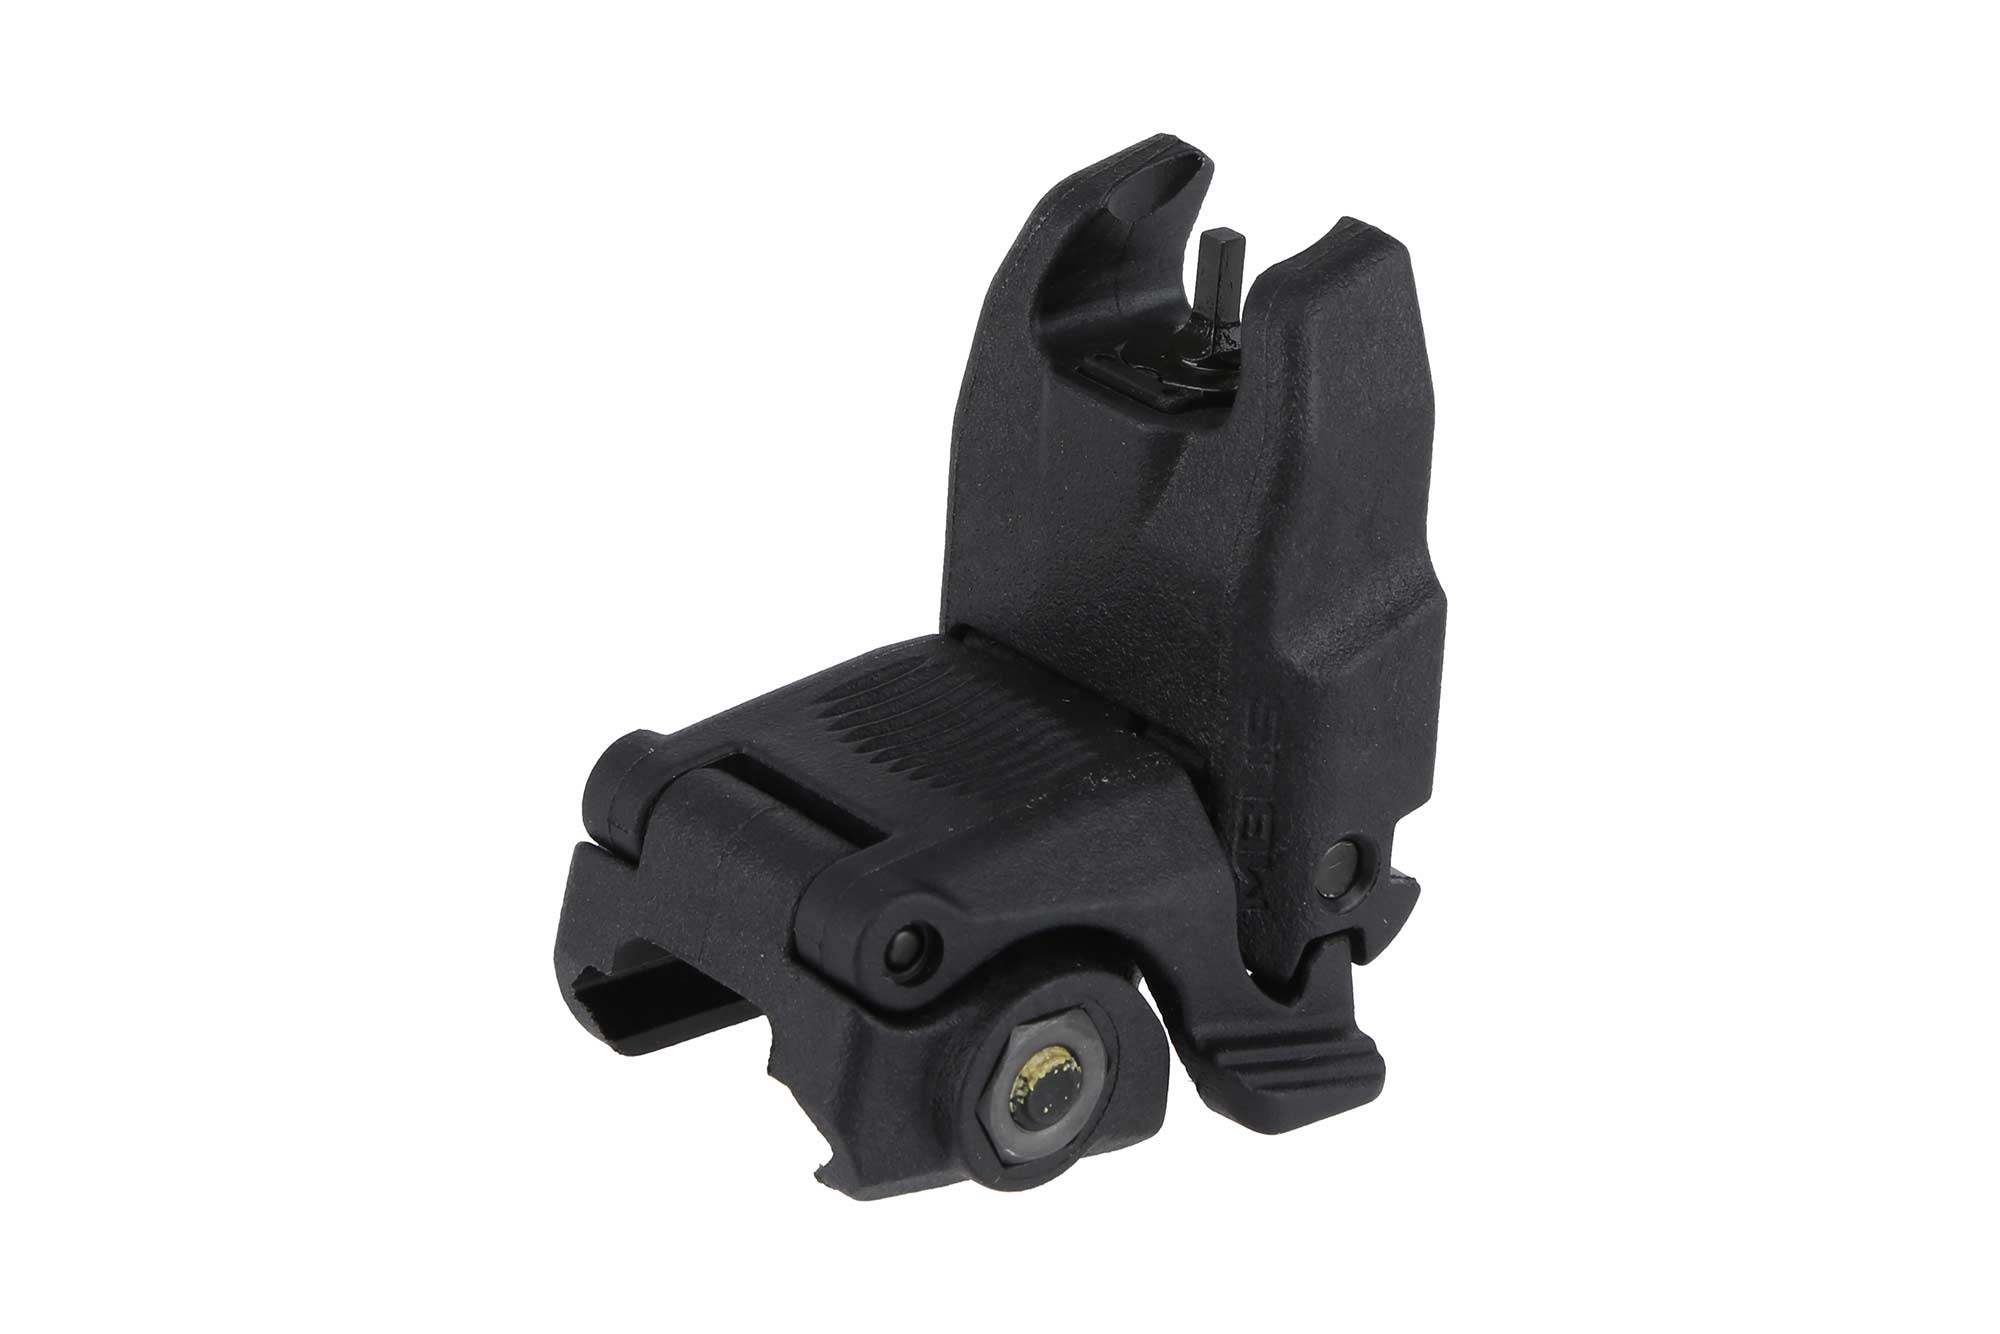 The Magpul MBUS polymer front sight features an integrated picatinny rail mount